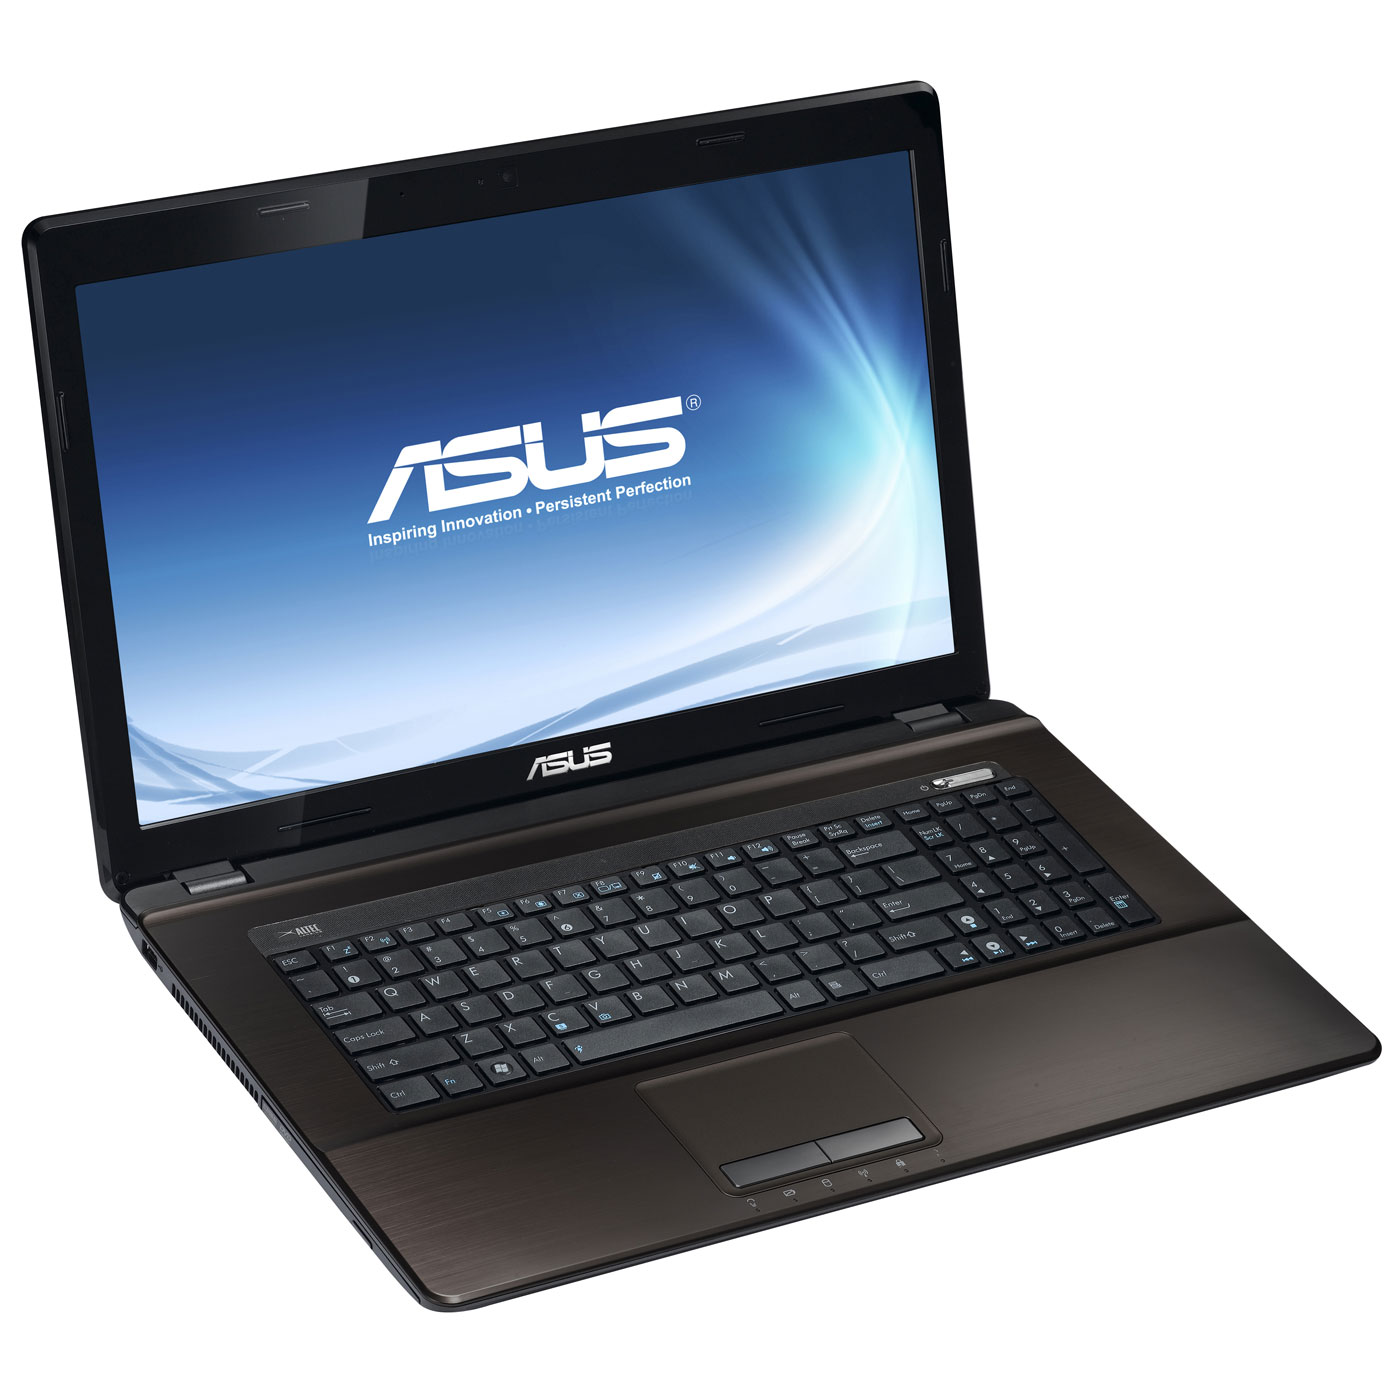 asus x73s prix ordinateurs et logiciels. Black Bedroom Furniture Sets. Home Design Ideas